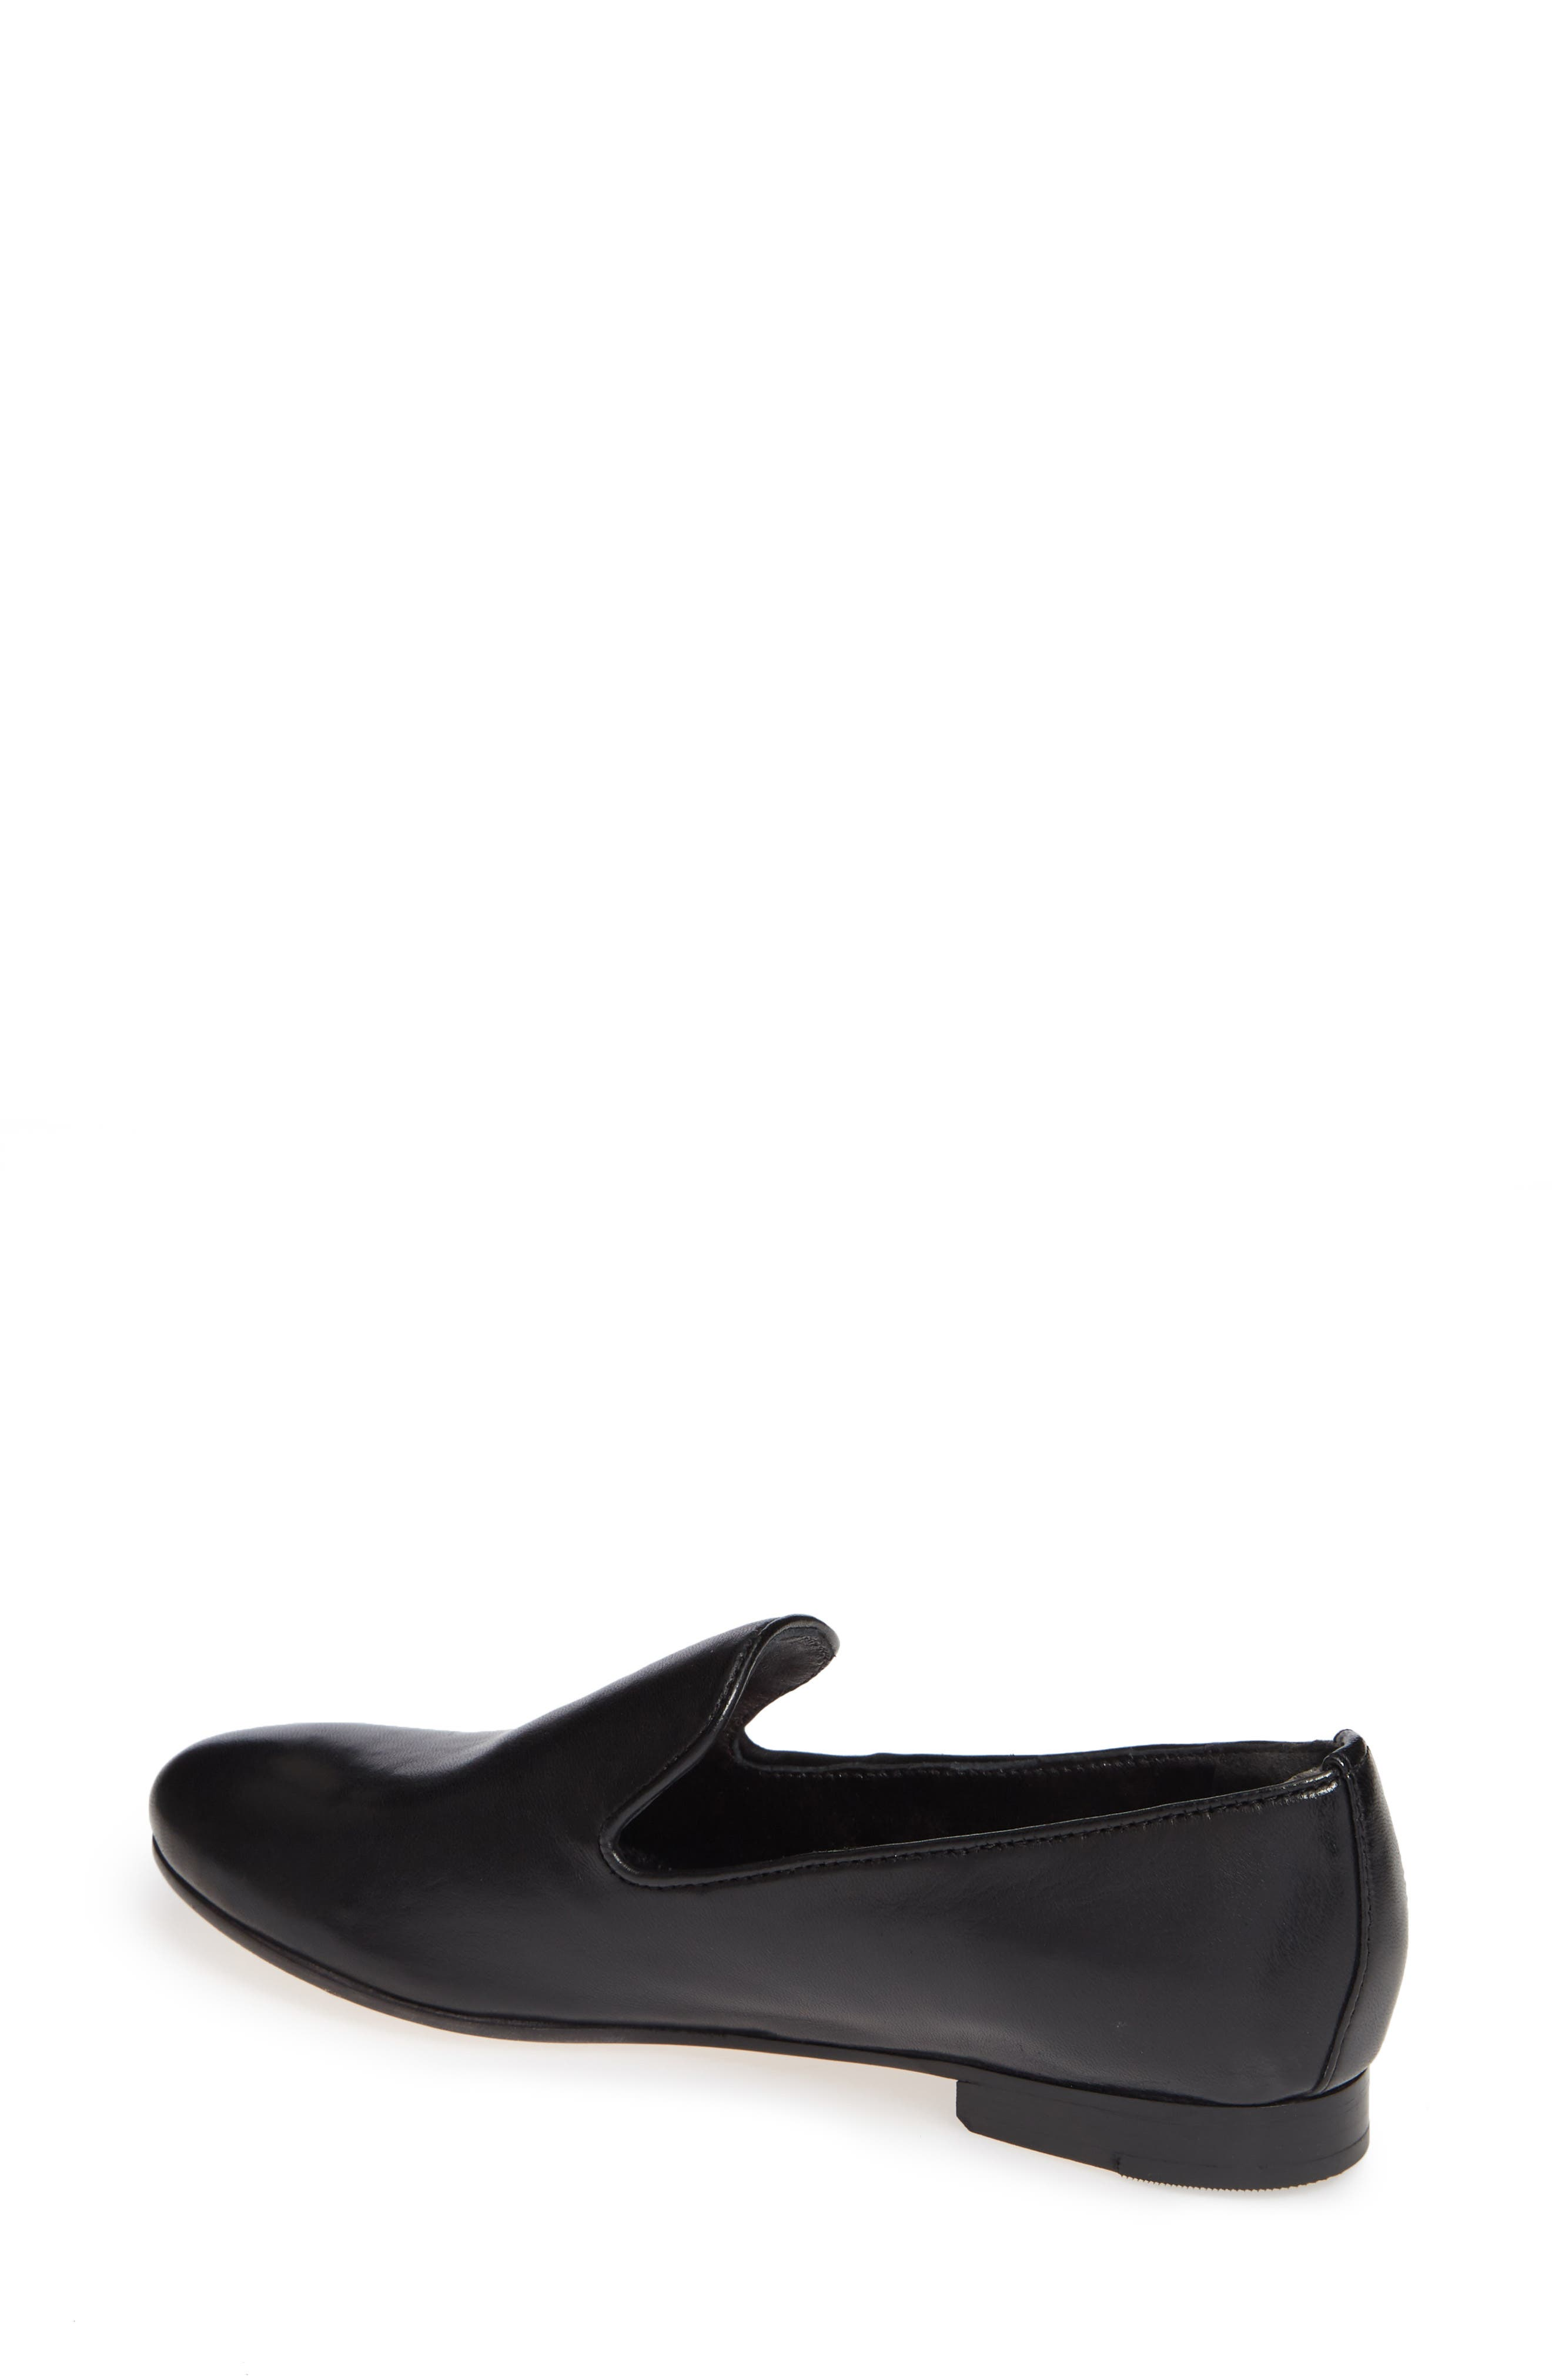 Sierra Loafer,                             Alternate thumbnail 2, color,                             BLACK LEATHER